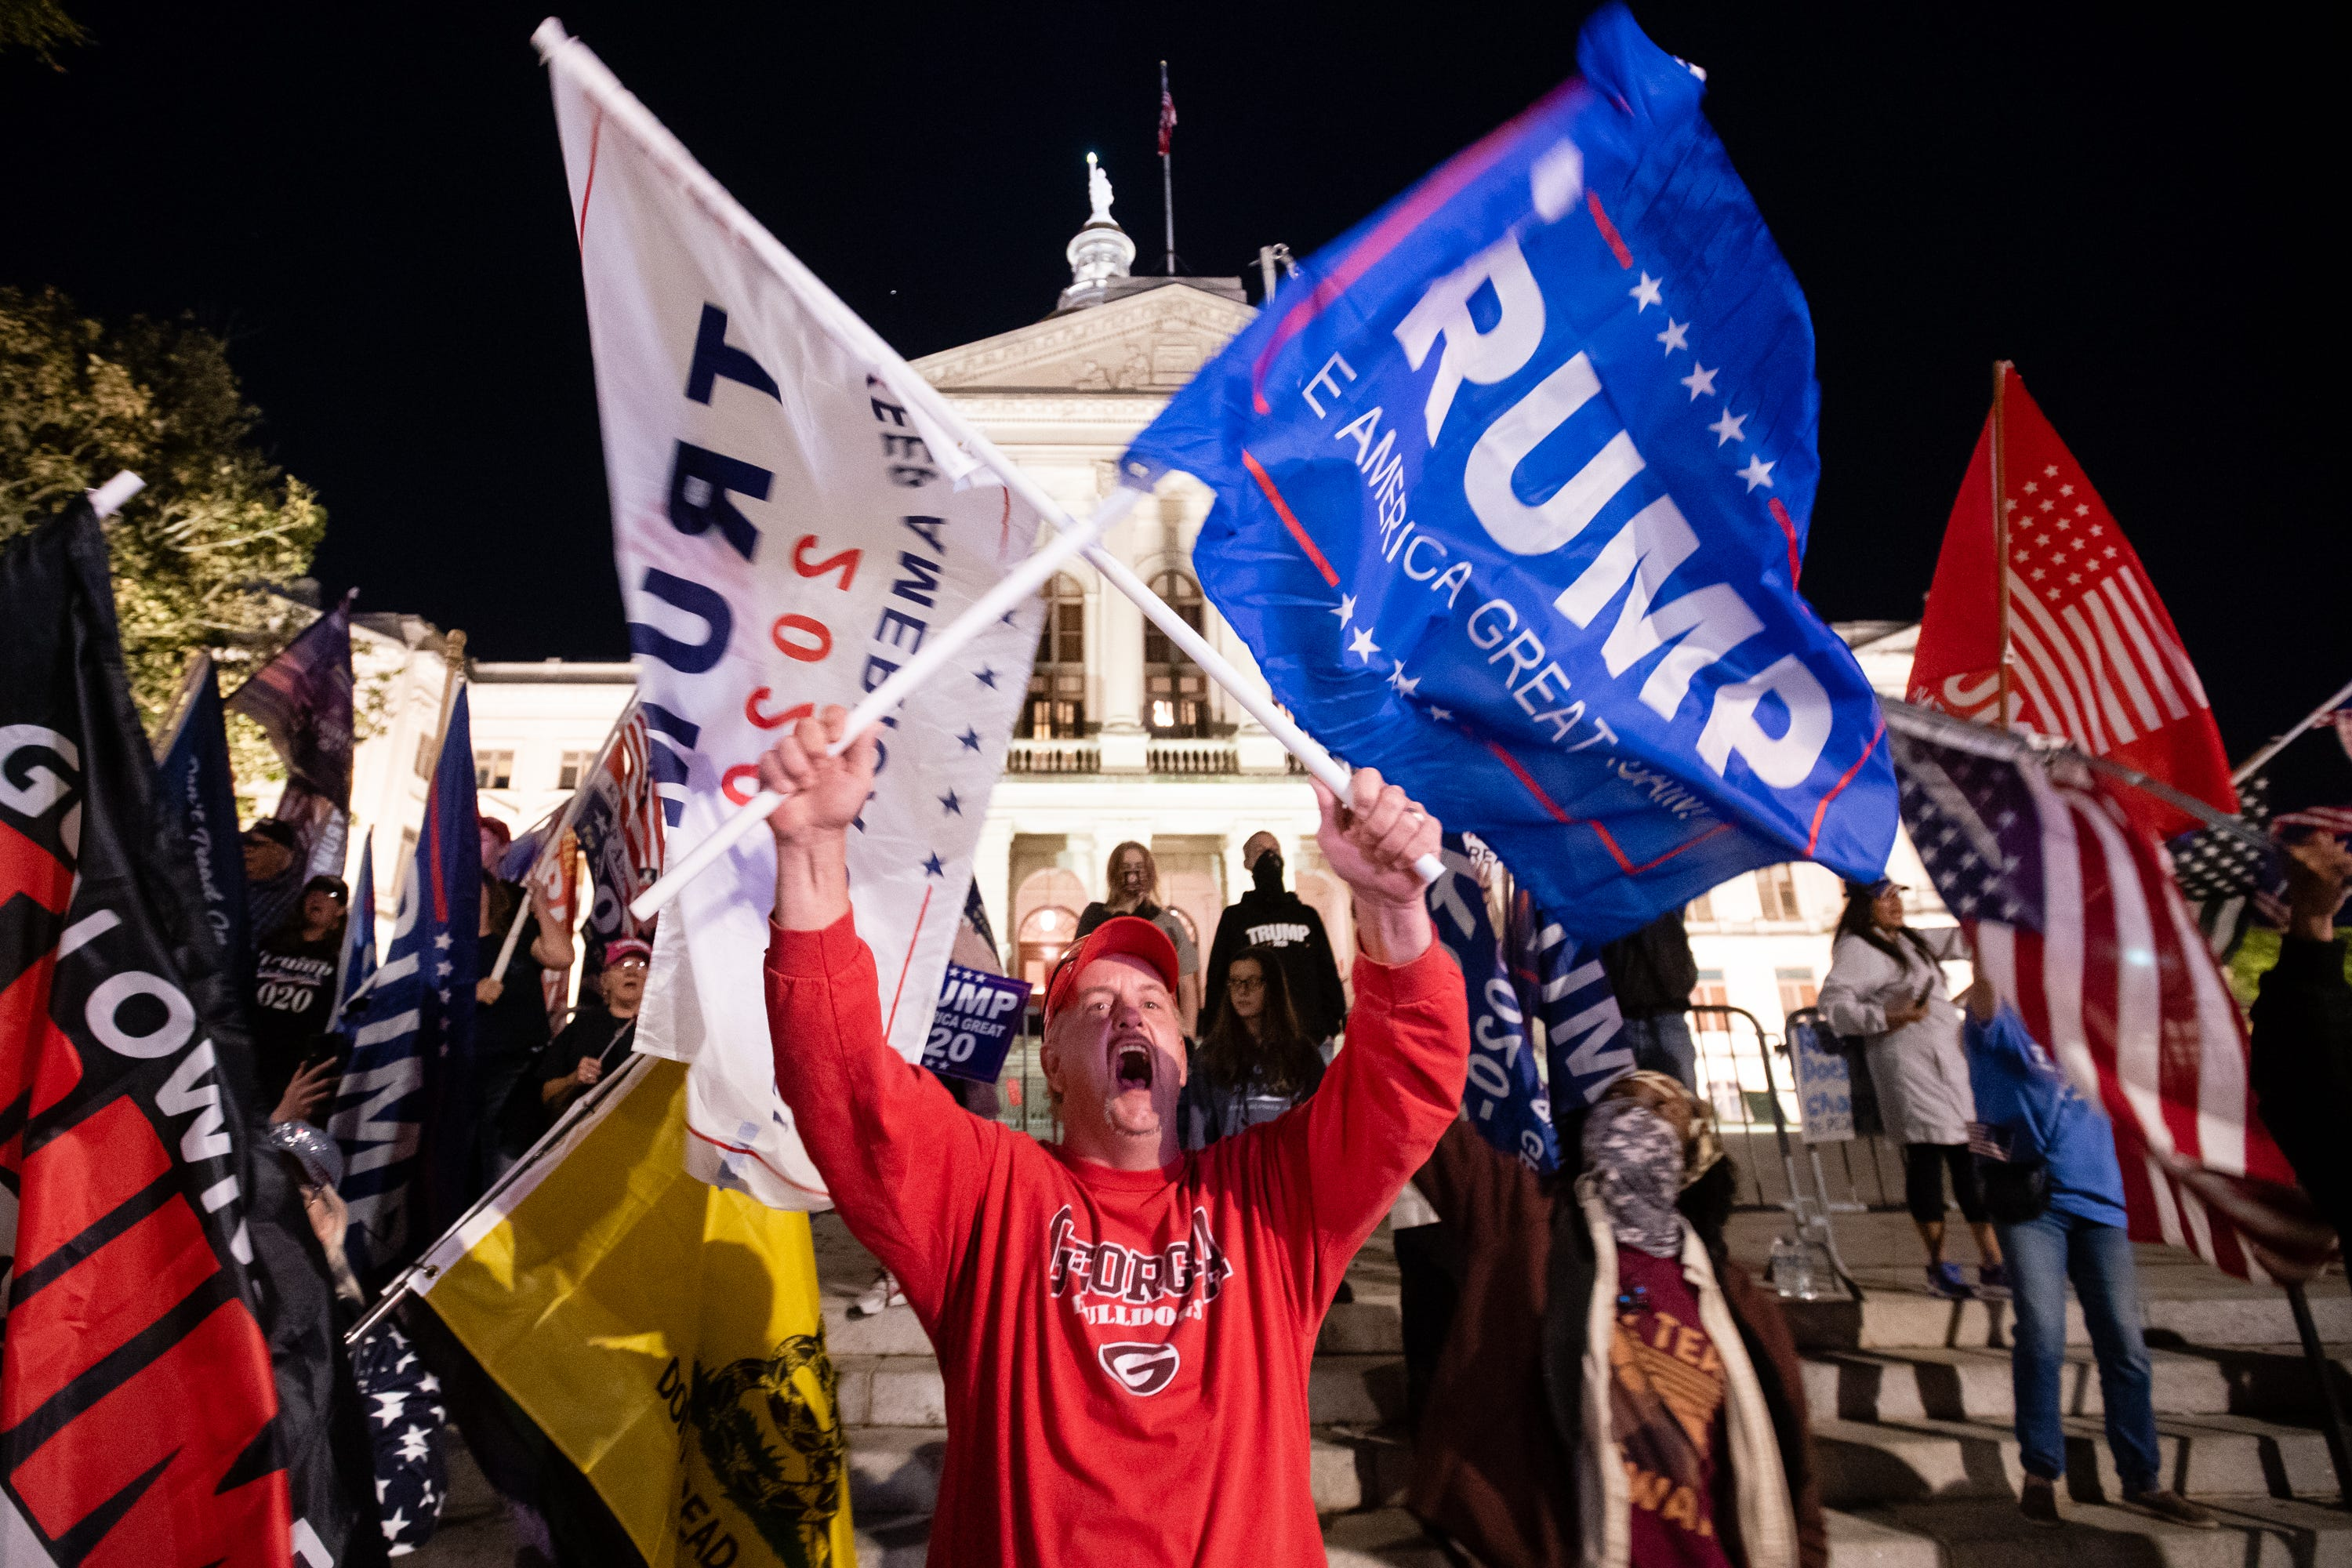 Censorship or conspiracy theory? Trump supporters say Facebook and Twitter censor them but conservatives still rule social media